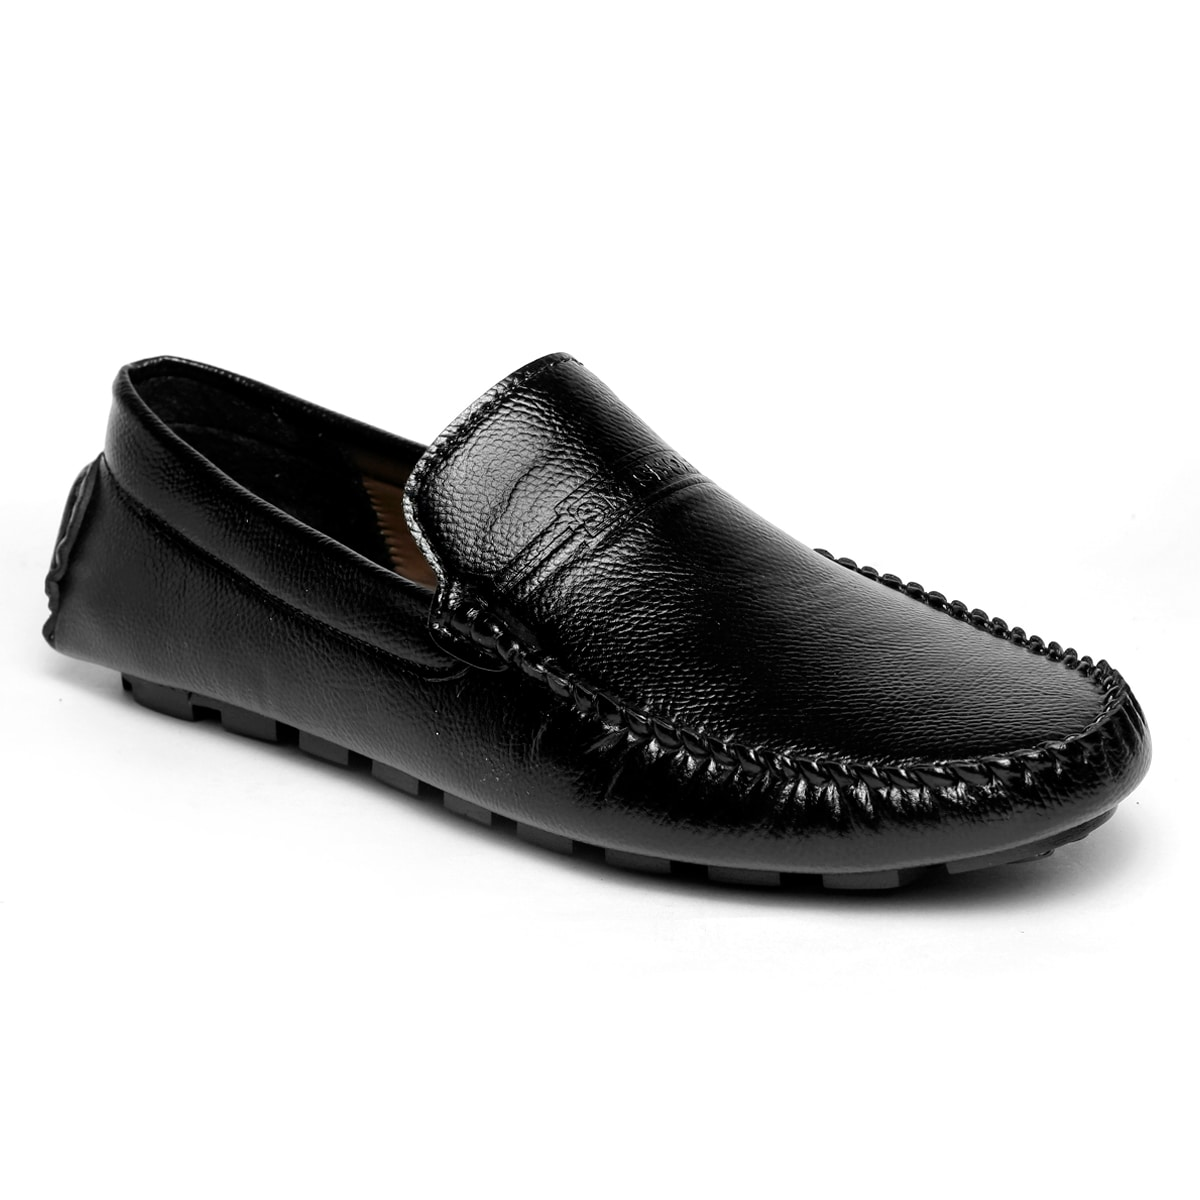 JK PORT COMFORTABLE, FASHIONABLE AND TRENDY LOAFERS JKPLF044BLK (BLACK,6-10,8 PAIR)